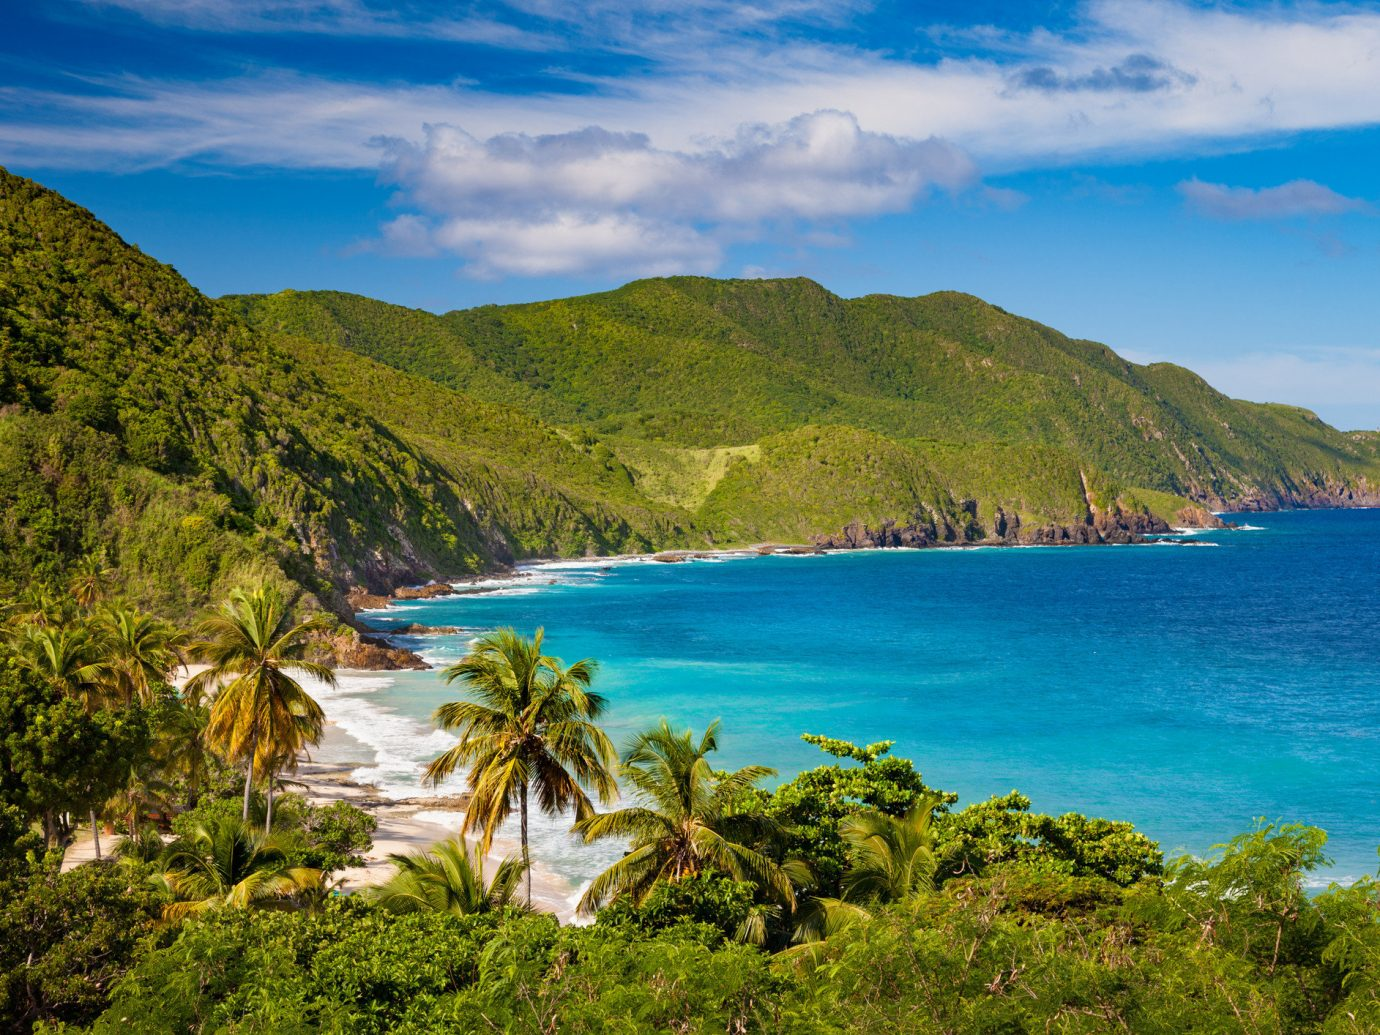 Trip Ideas outdoor mountain sky water Nature geographical feature landform body of water Coast Sea shore tree Ocean vacation cloud bay hill Beach landscape Lake loch tropics cove cliff caribbean cape Island terrain islet Lagoon overlooking hillside beautiful surrounded highland